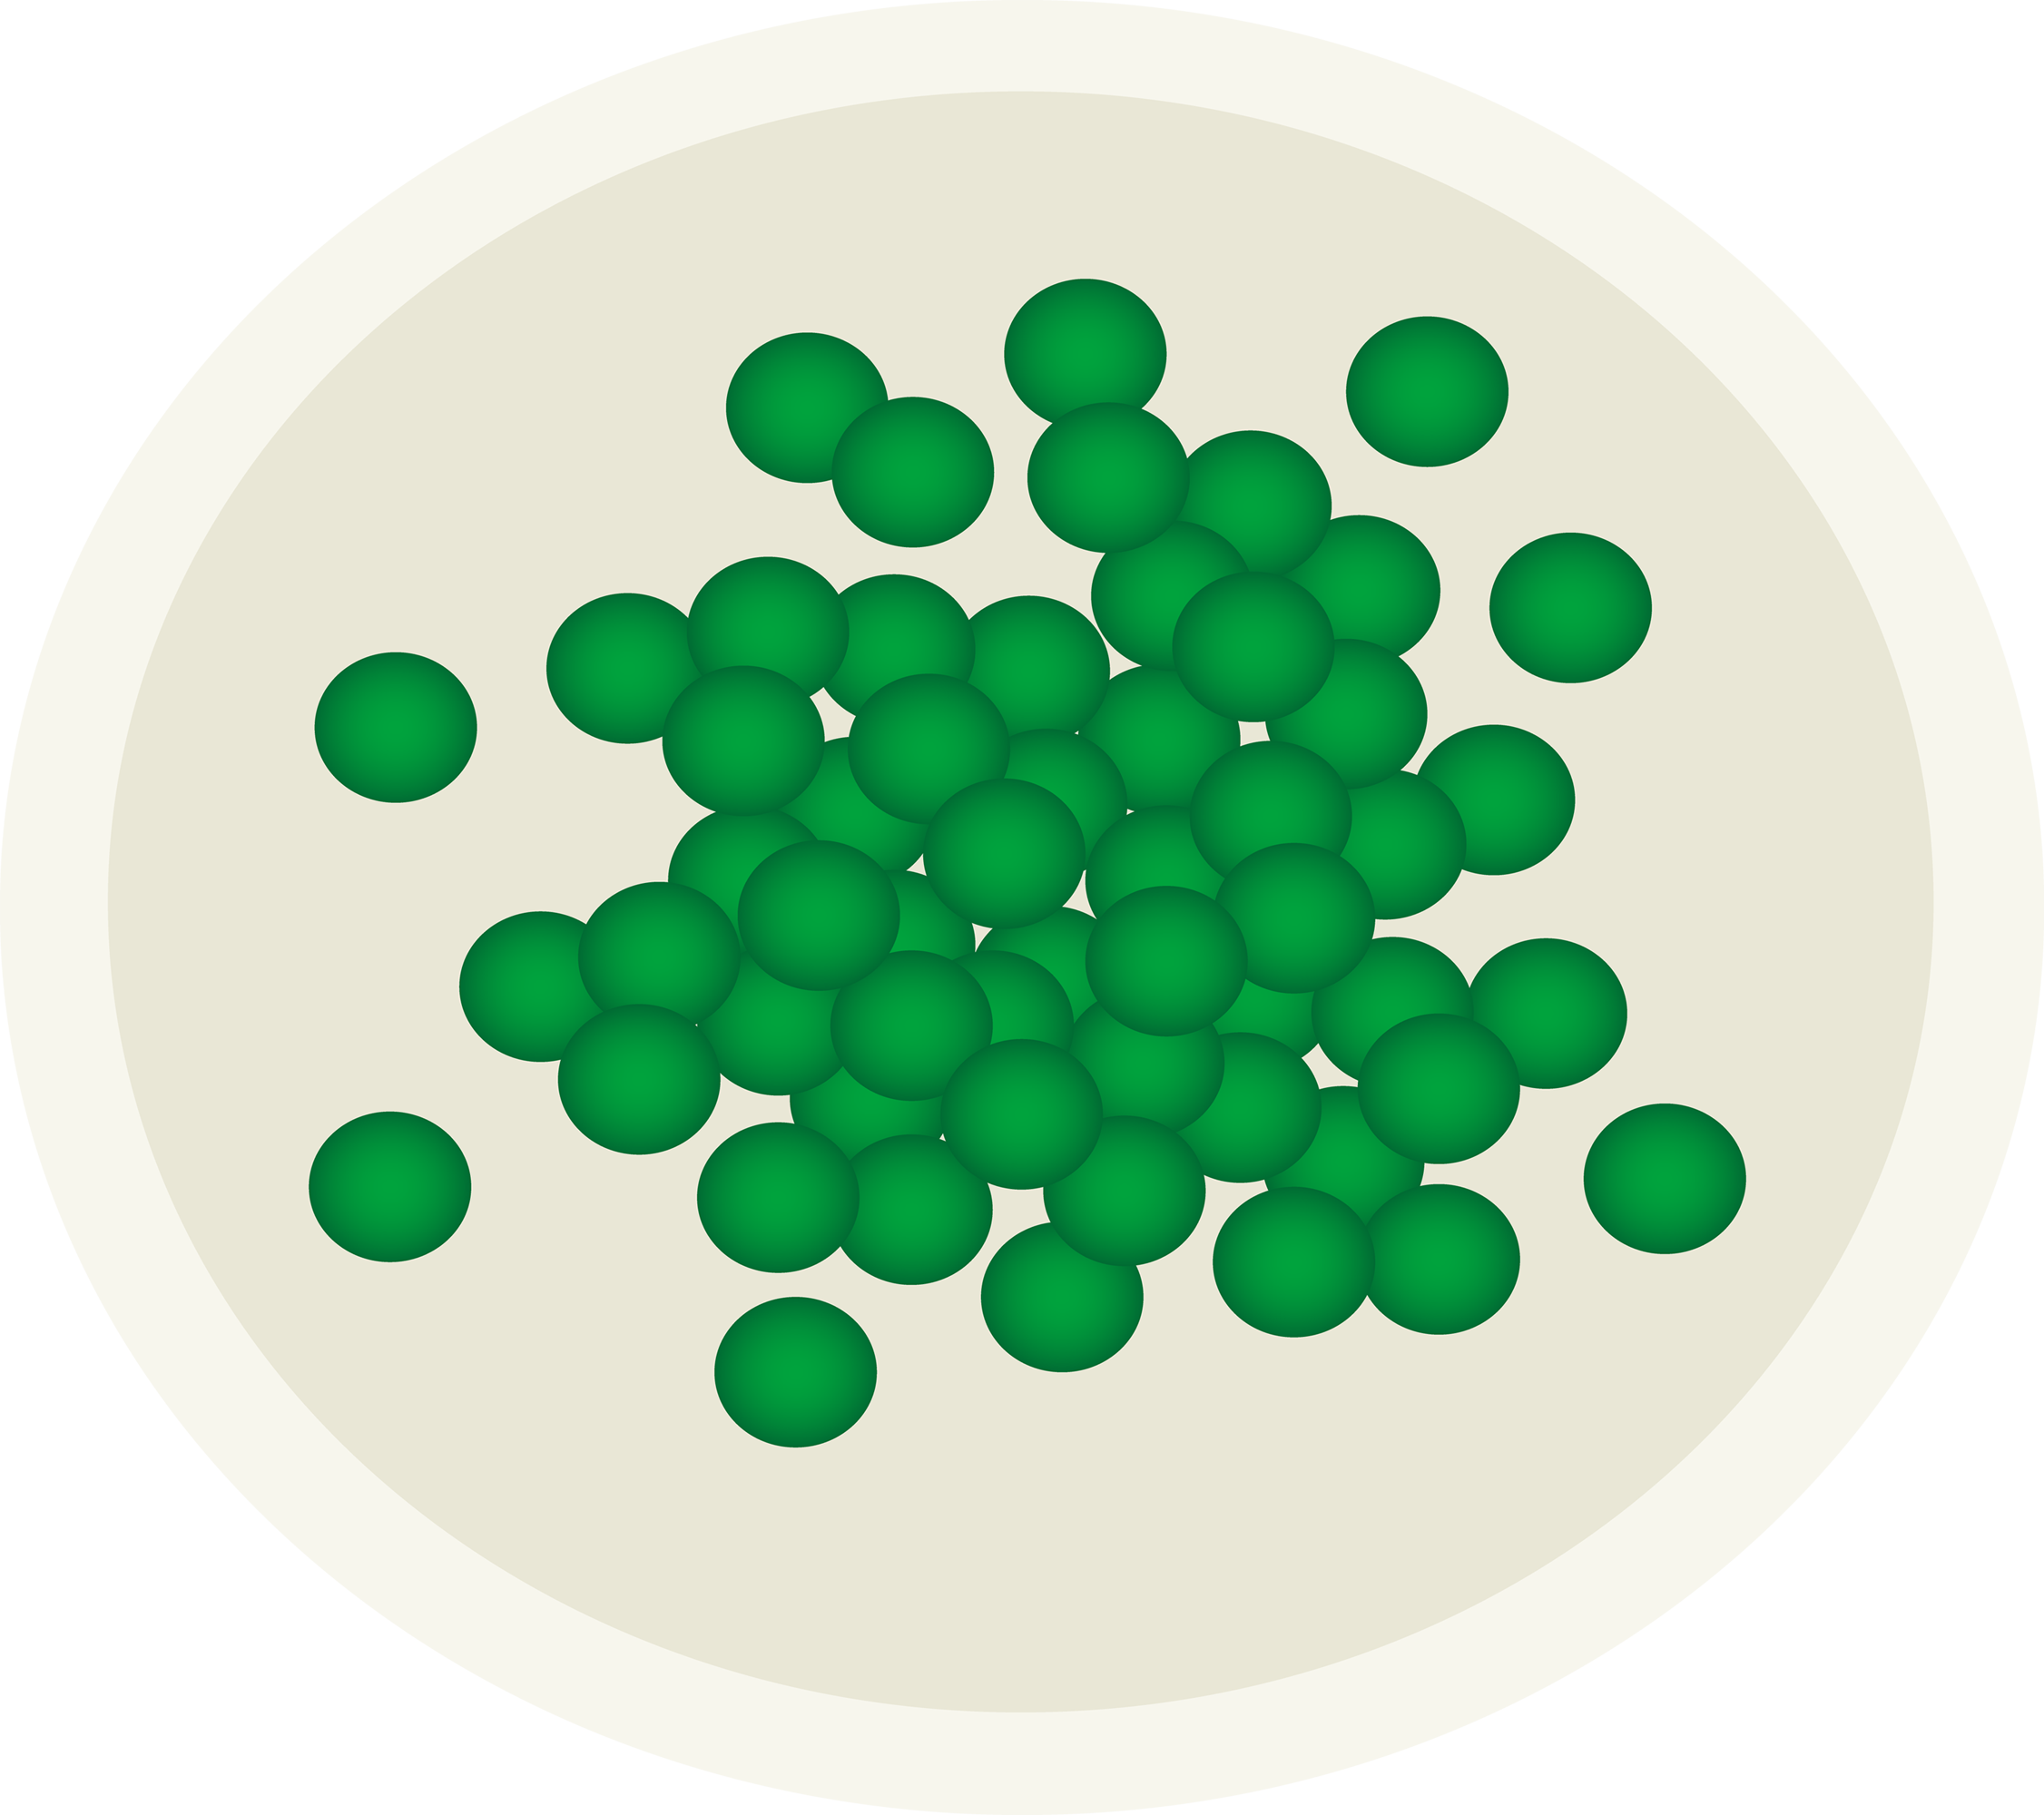 Green Peas on a White Plate - Free Clip Art